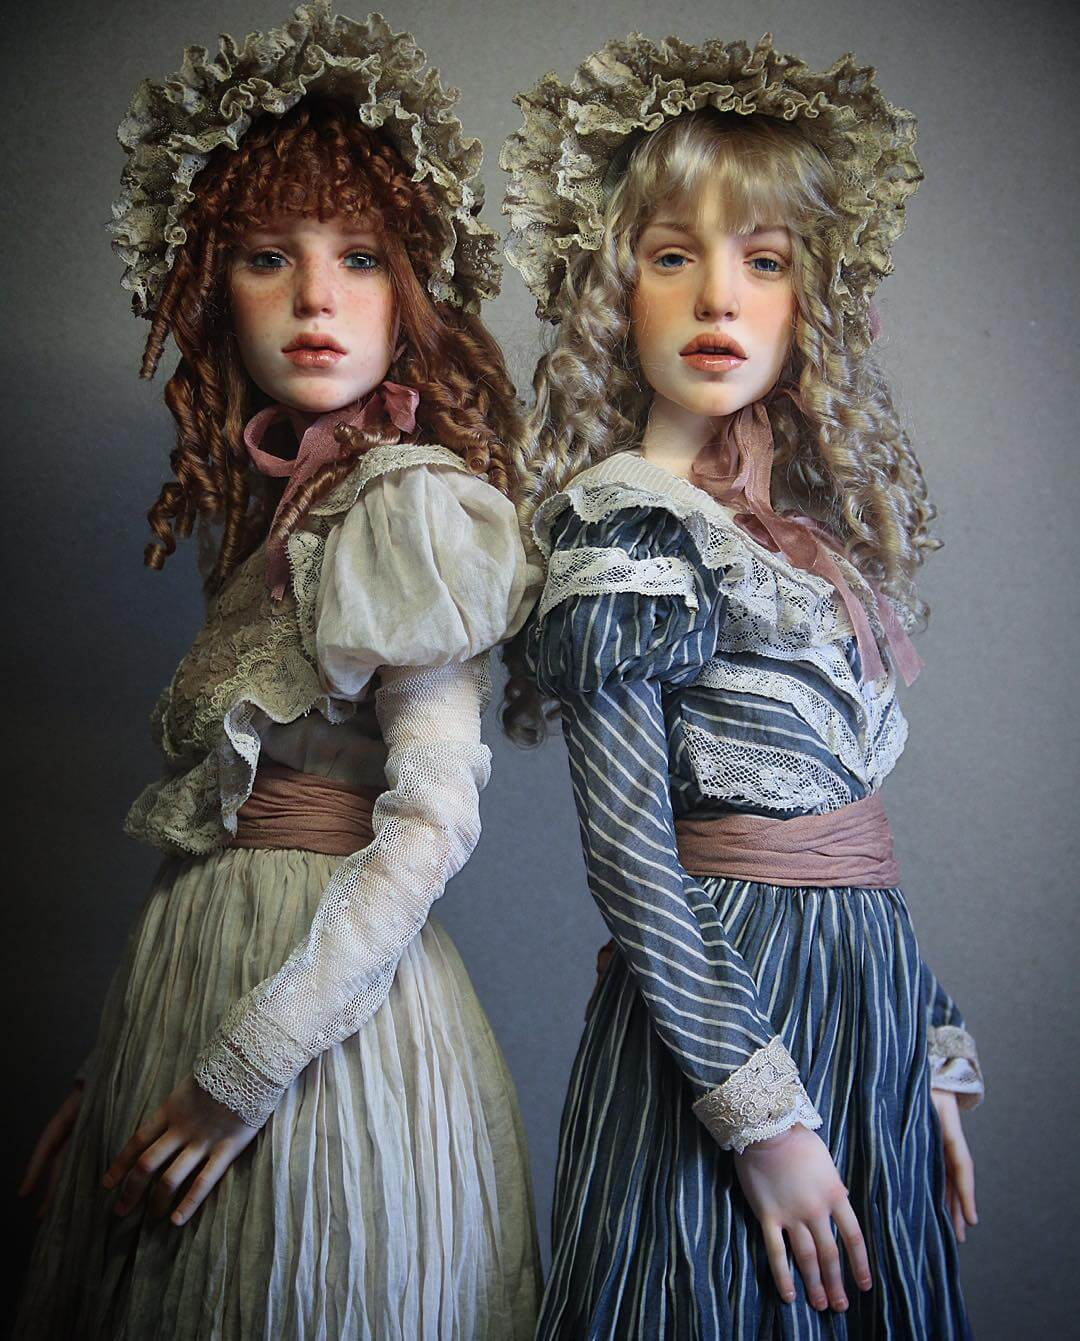 hyper realistic dolls michael zajkov fy 16 - Michael Zajkov Makes Amazingly Realistic Doll Faces That Will Make Your Skin Shiver